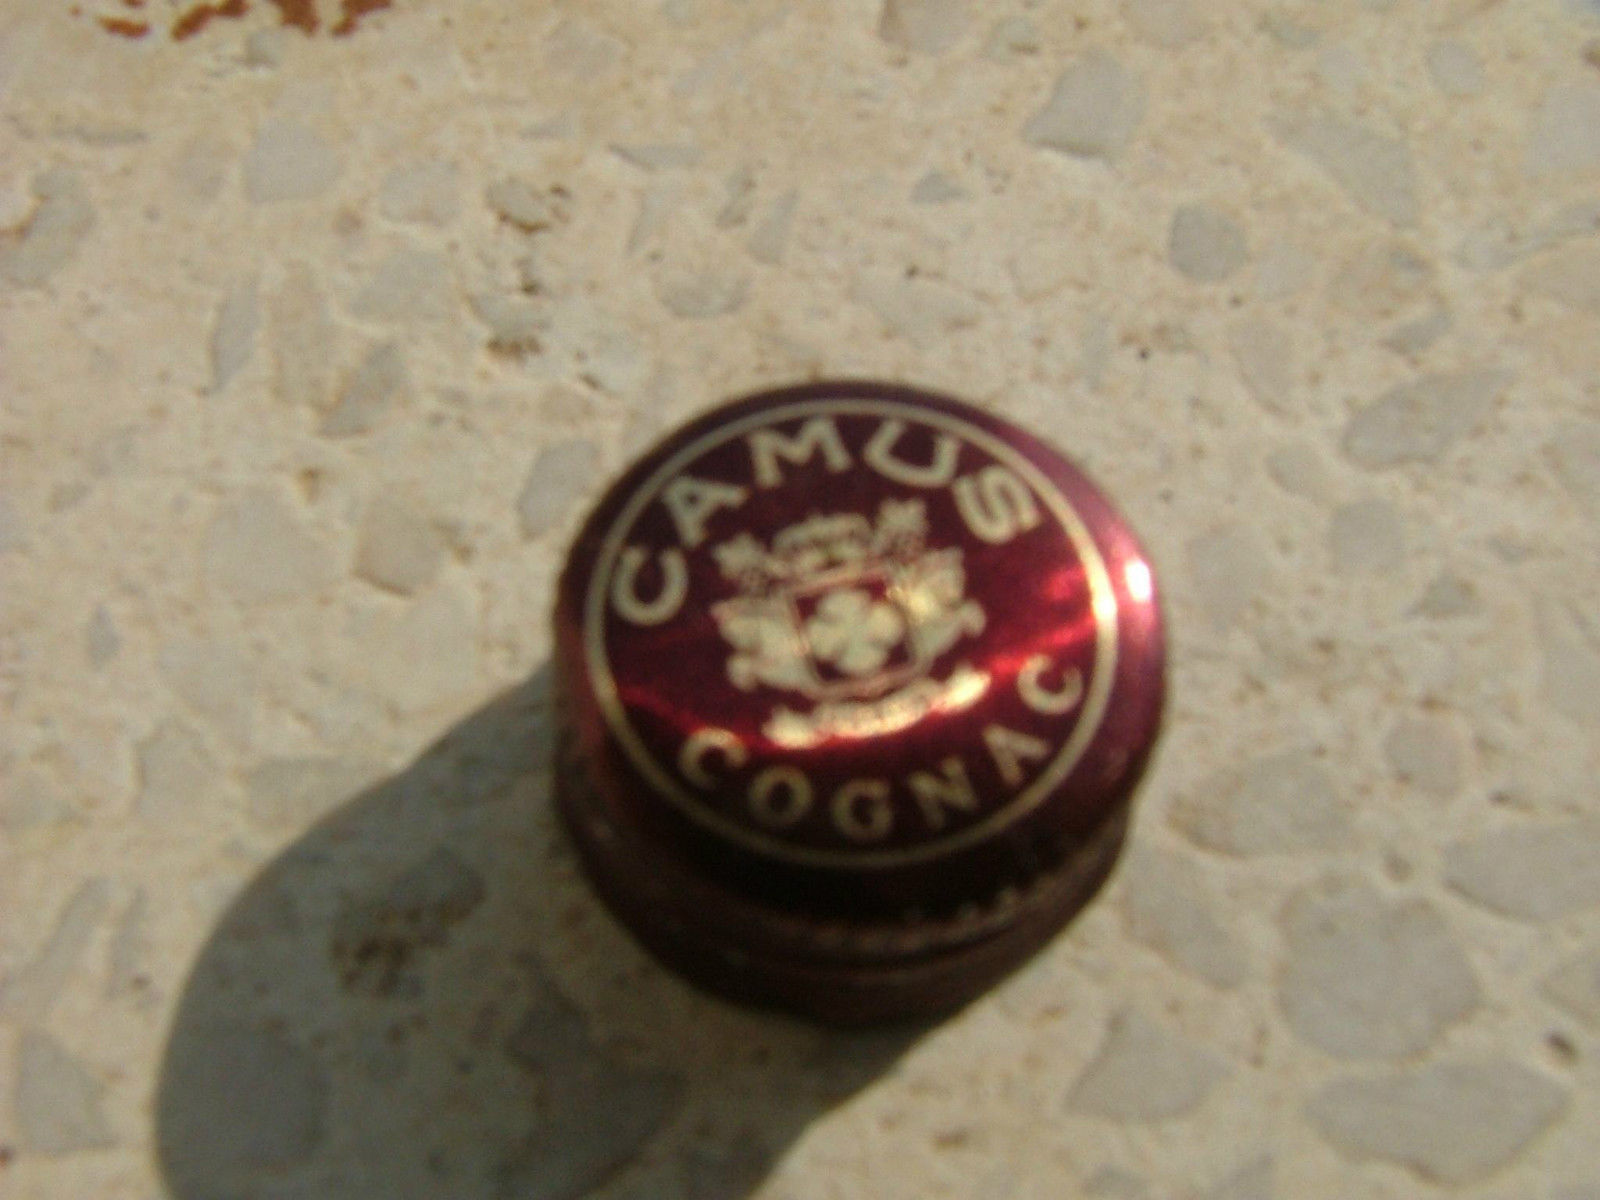 Miniature Camus Cognac empty plastic bottle - Rare 2 Find image 3